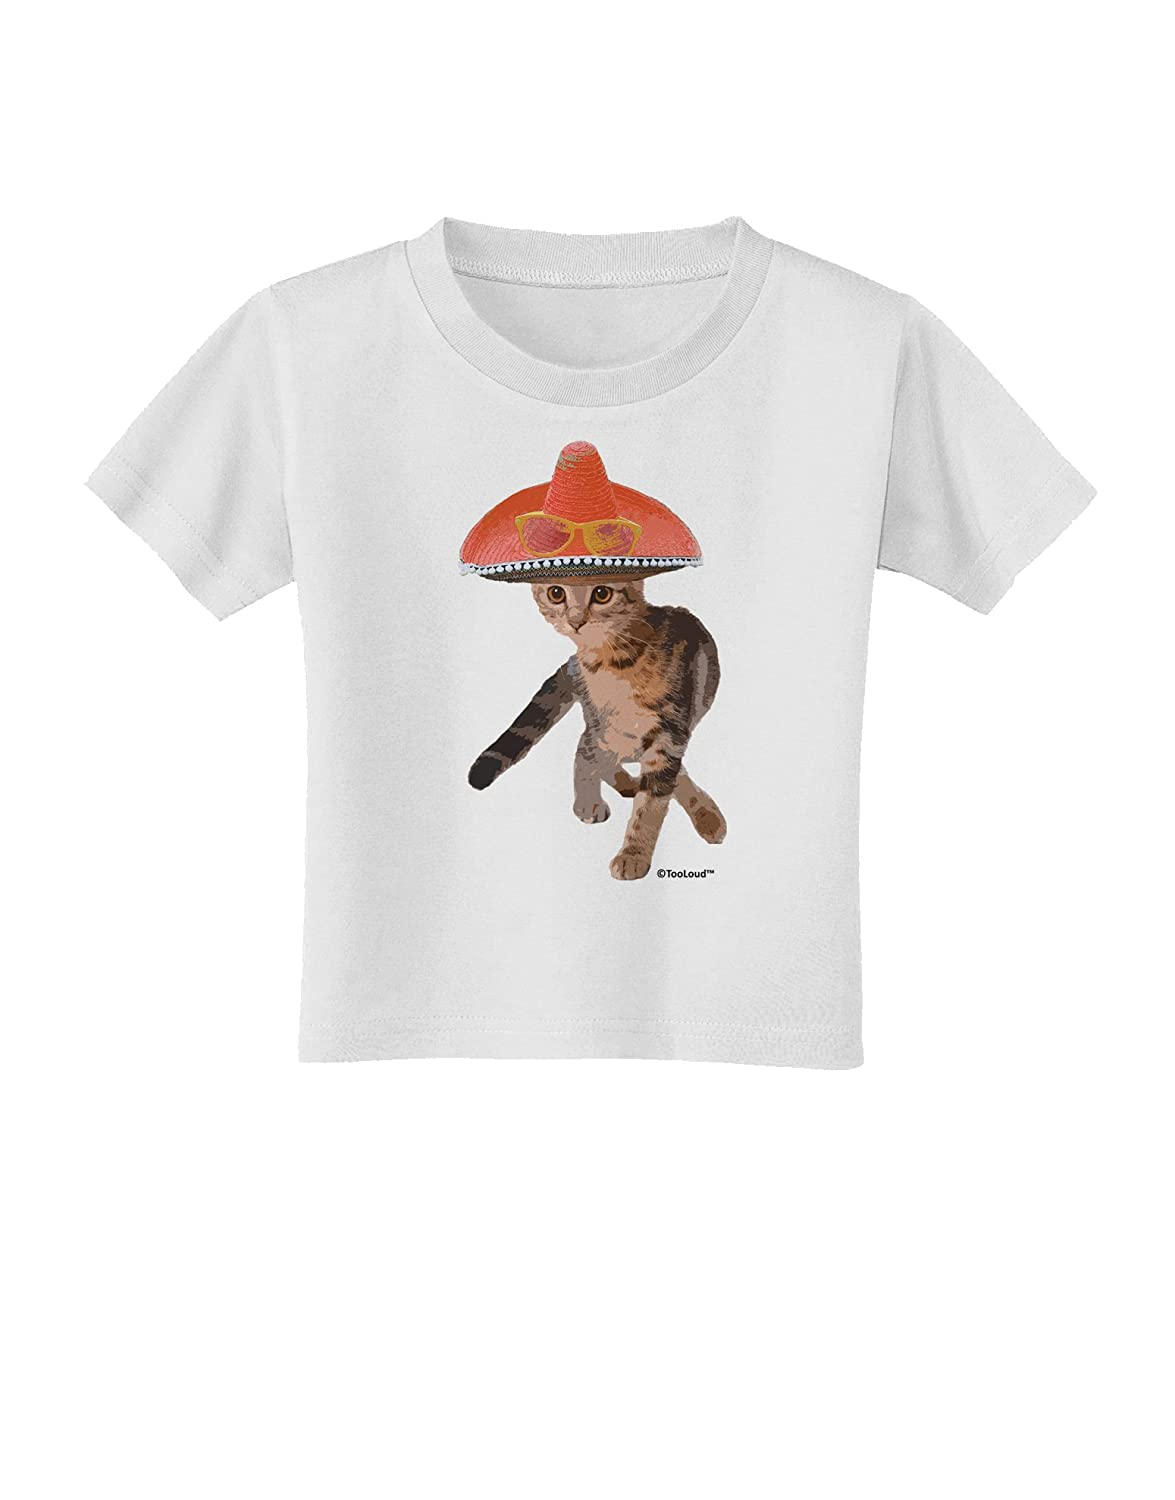 TooLoud Cat with Sombrero and Sunglasses Toddler T-Shirt